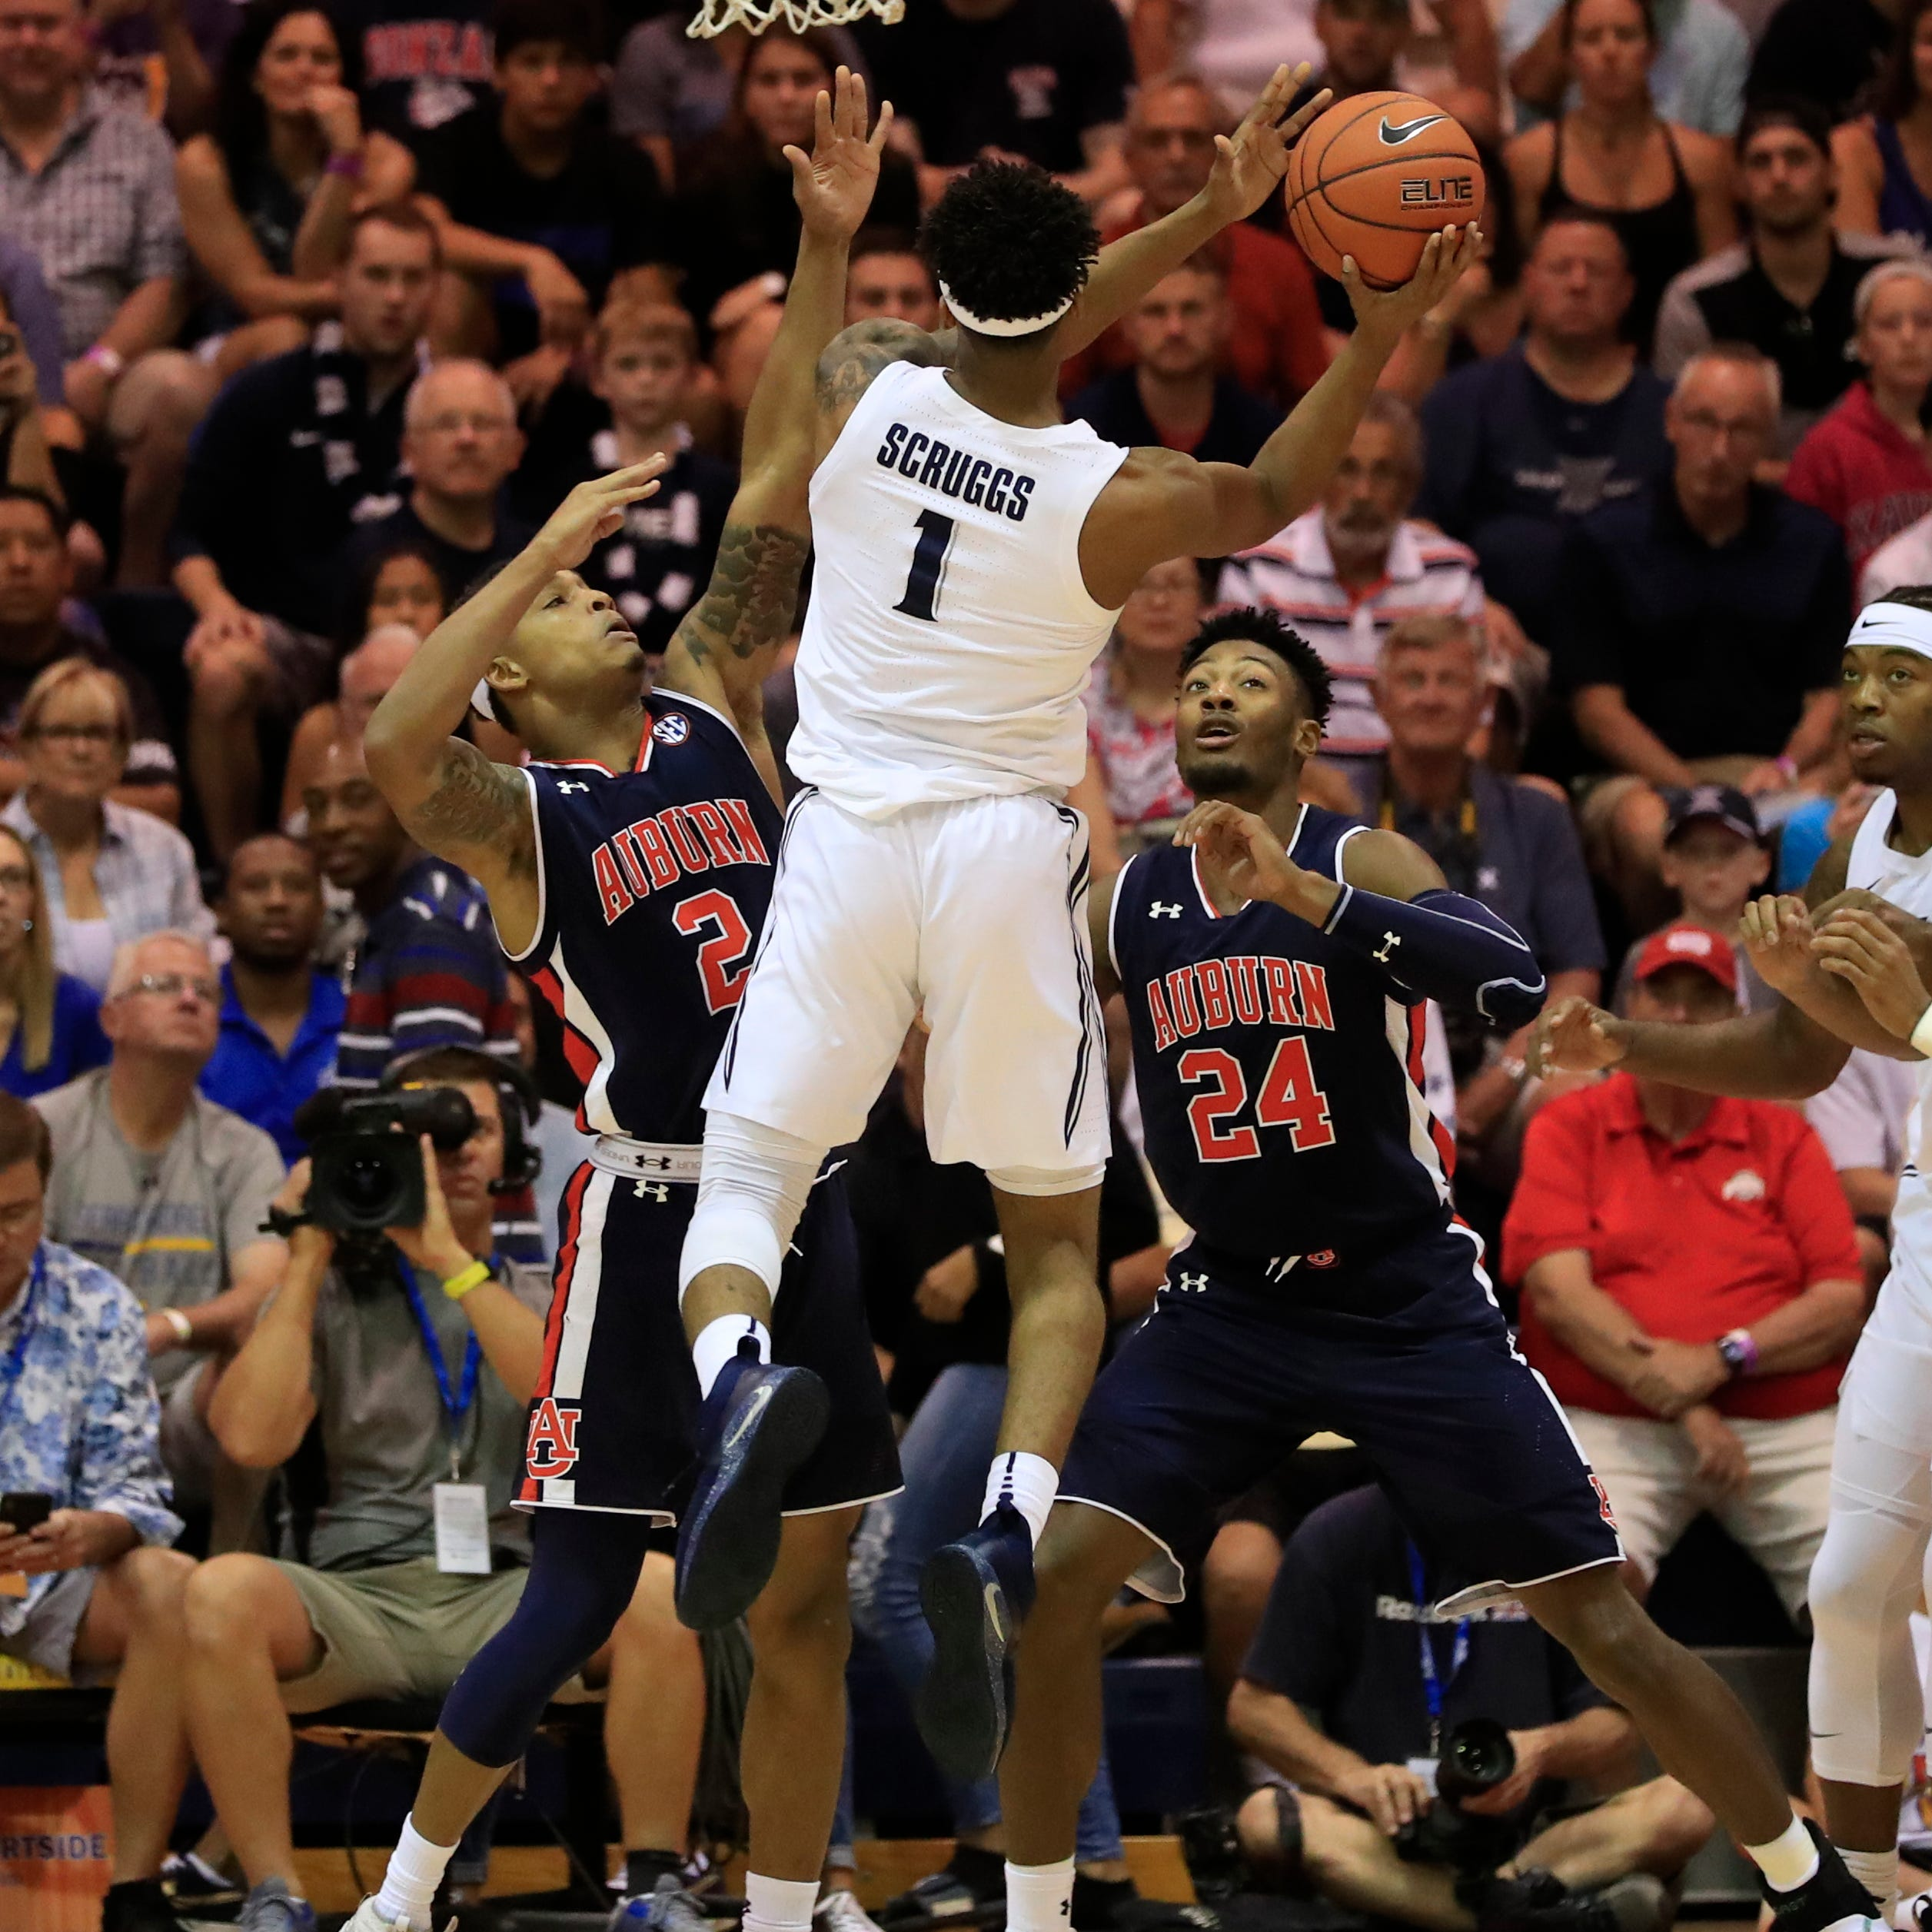 Xavier falls to Auburn in an overtime thriller to open the Maui Invitational